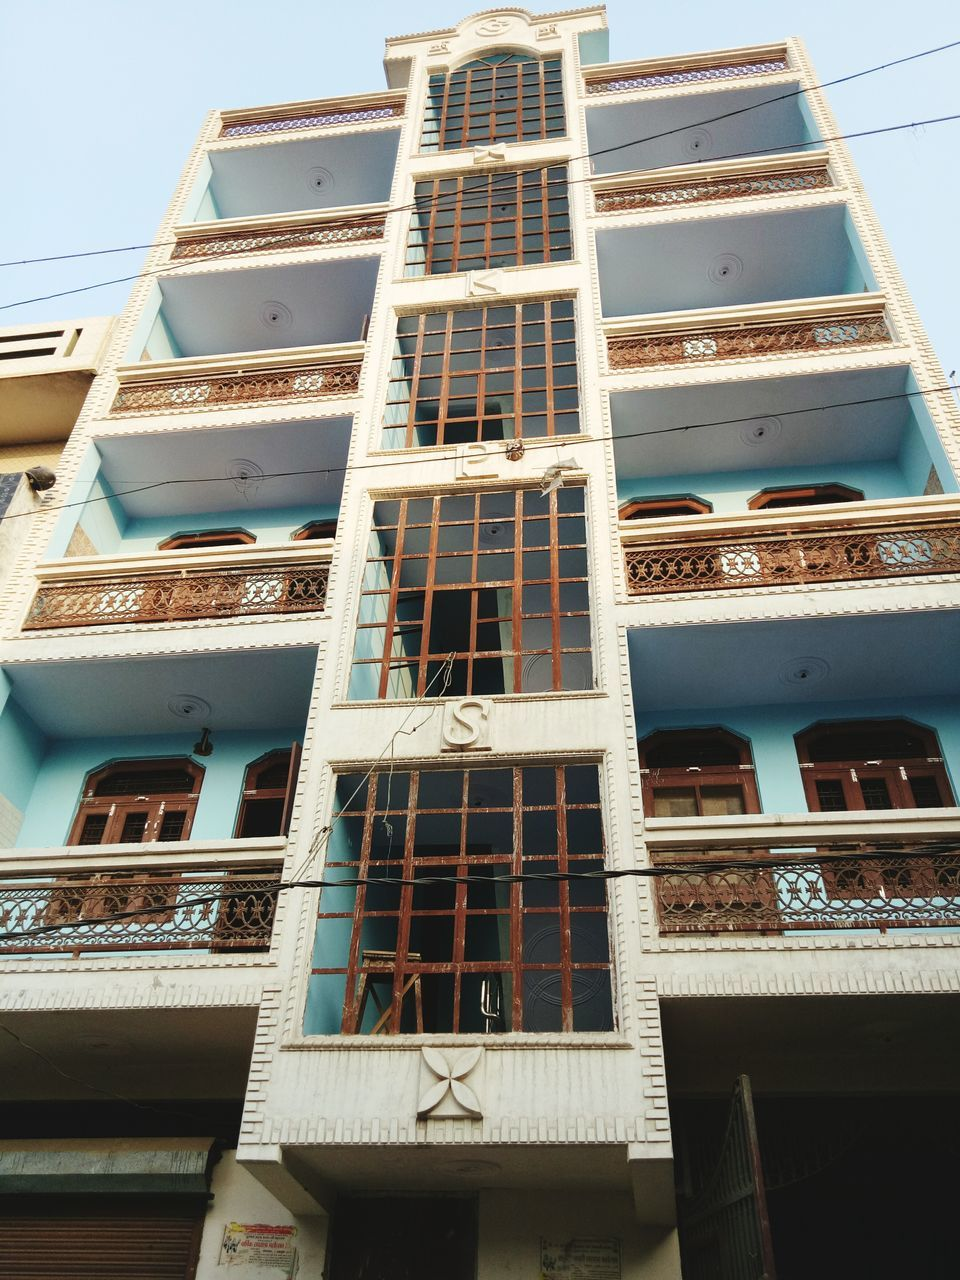 architecture, building exterior, window, low angle view, built structure, balcony, air conditioner, no people, residential building, apartment, city, outdoors, day, modern, residential